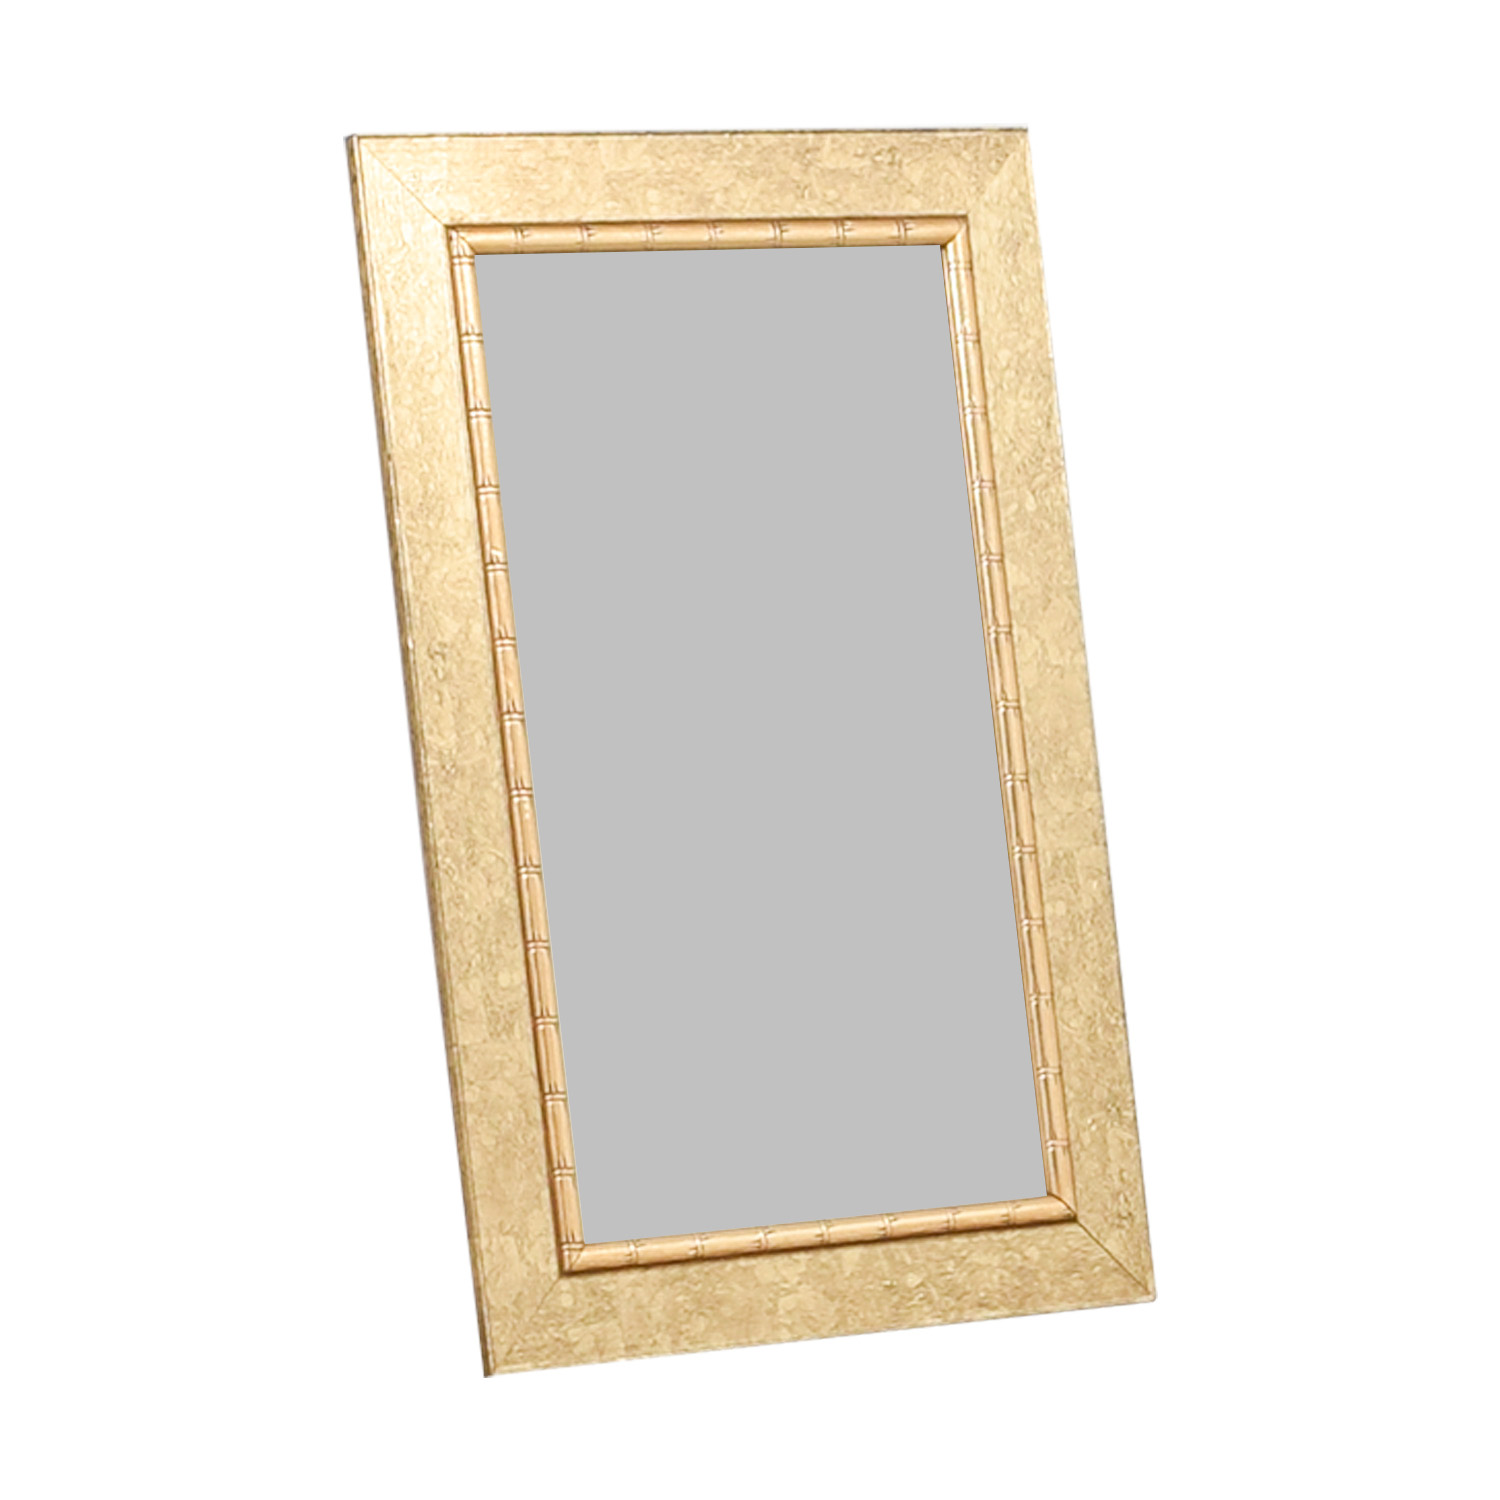 Turner Wall Accessories Turner Wall Accessories Gold Leaf Mirror price